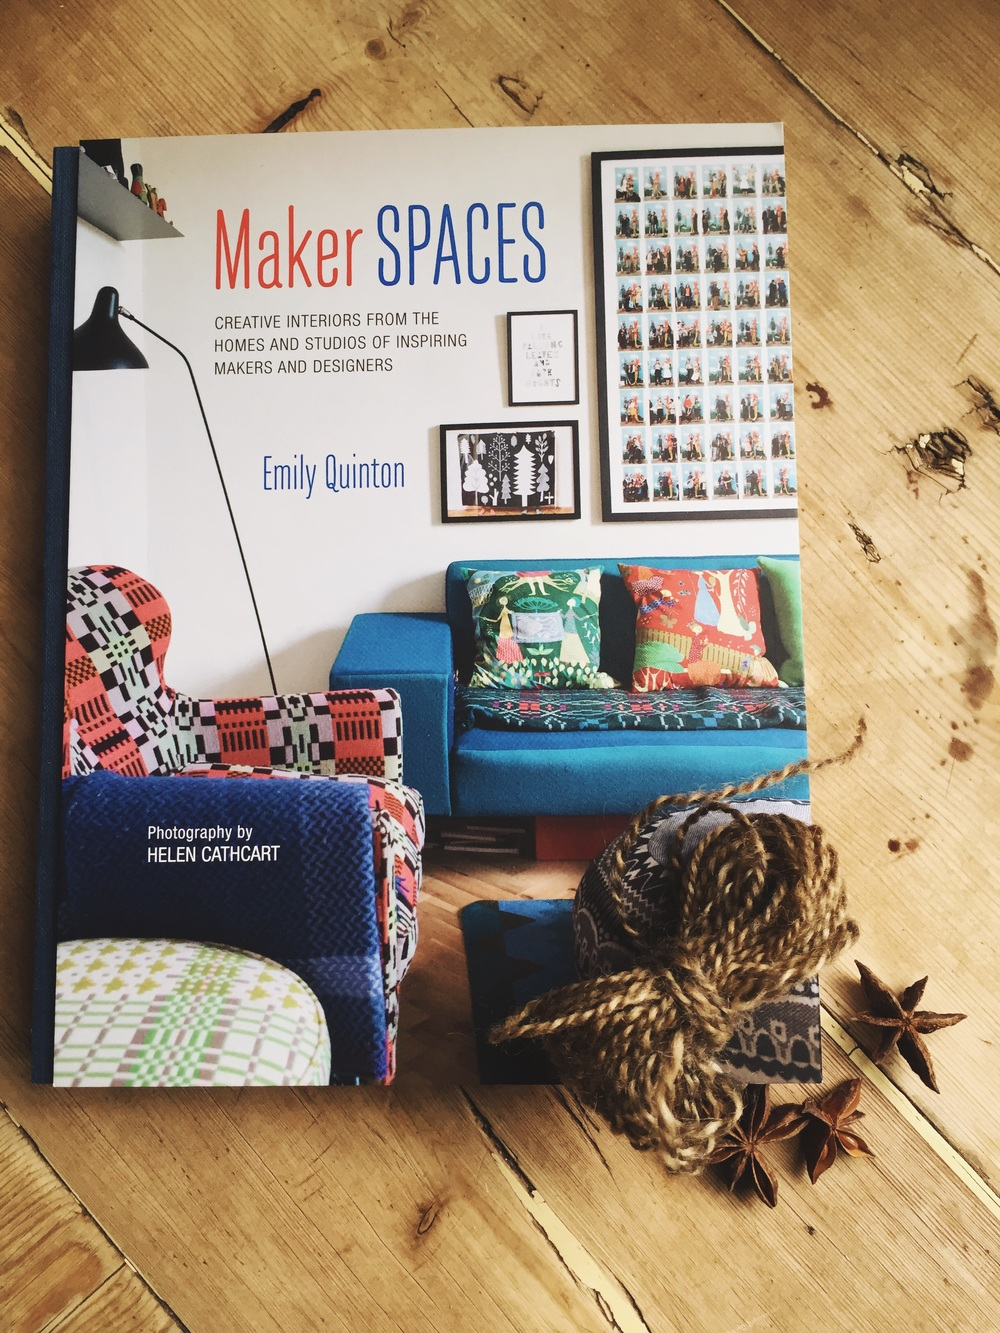 Maker Spaces by Emily Quinton